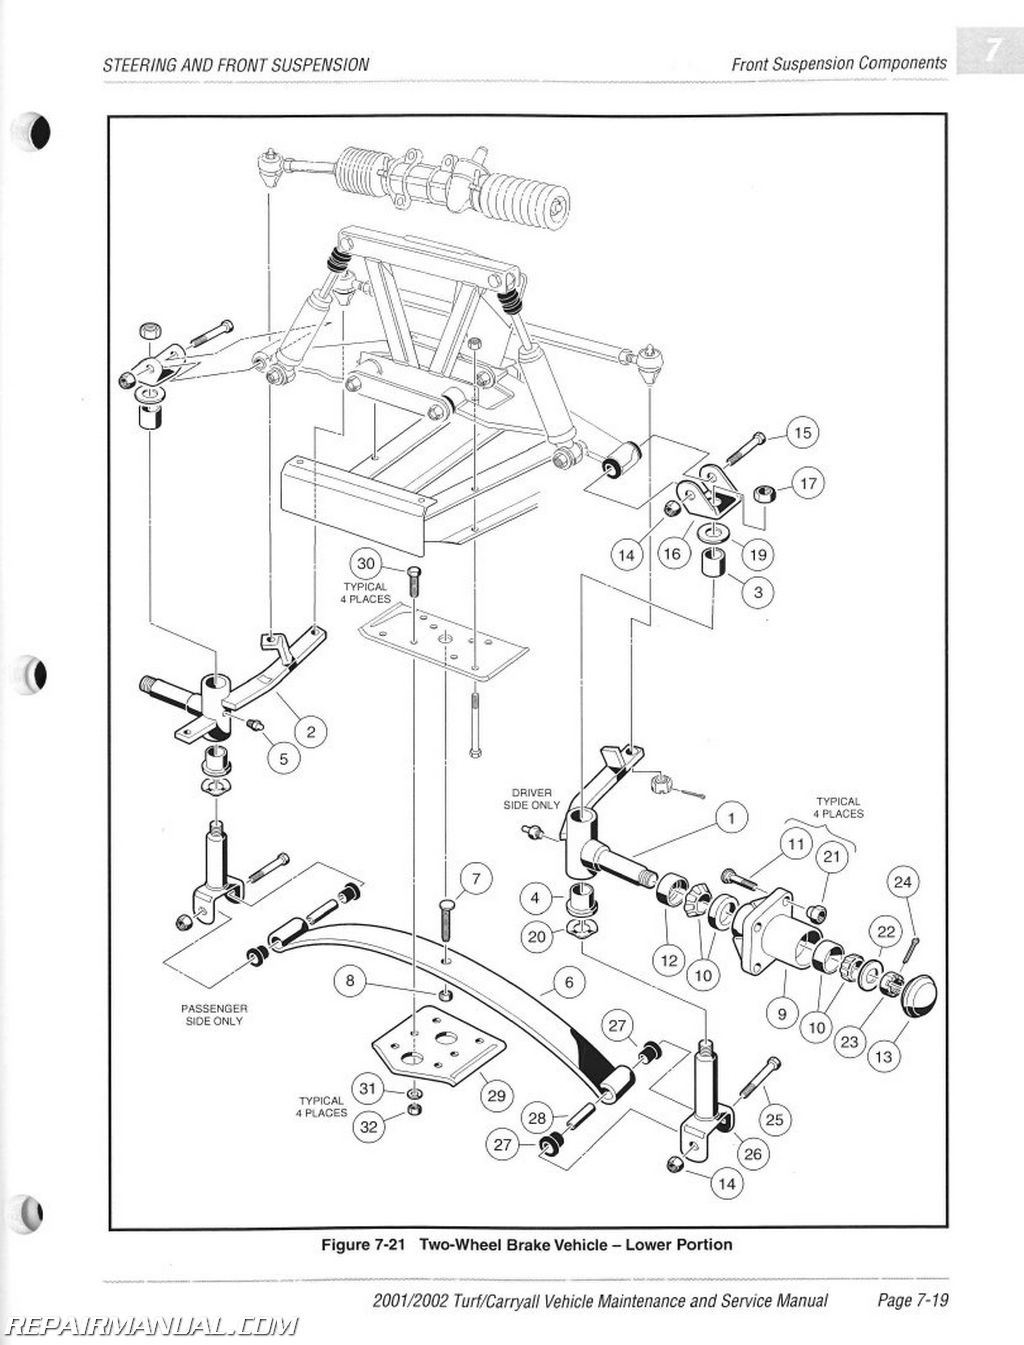 Club Car Carryall Turf  Parts Manual